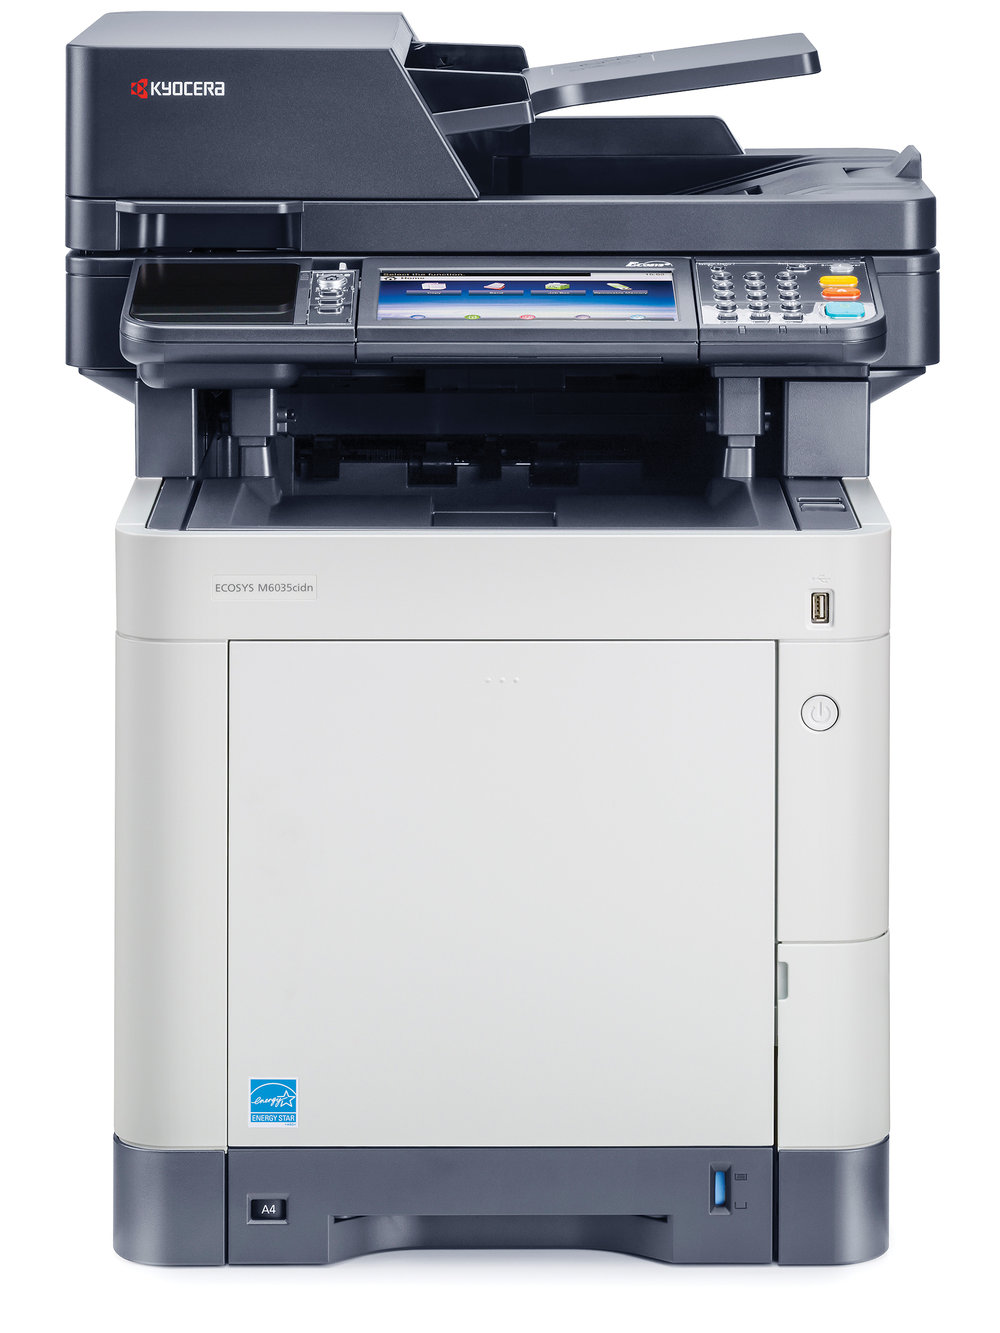 The Ecosys M6035cidn